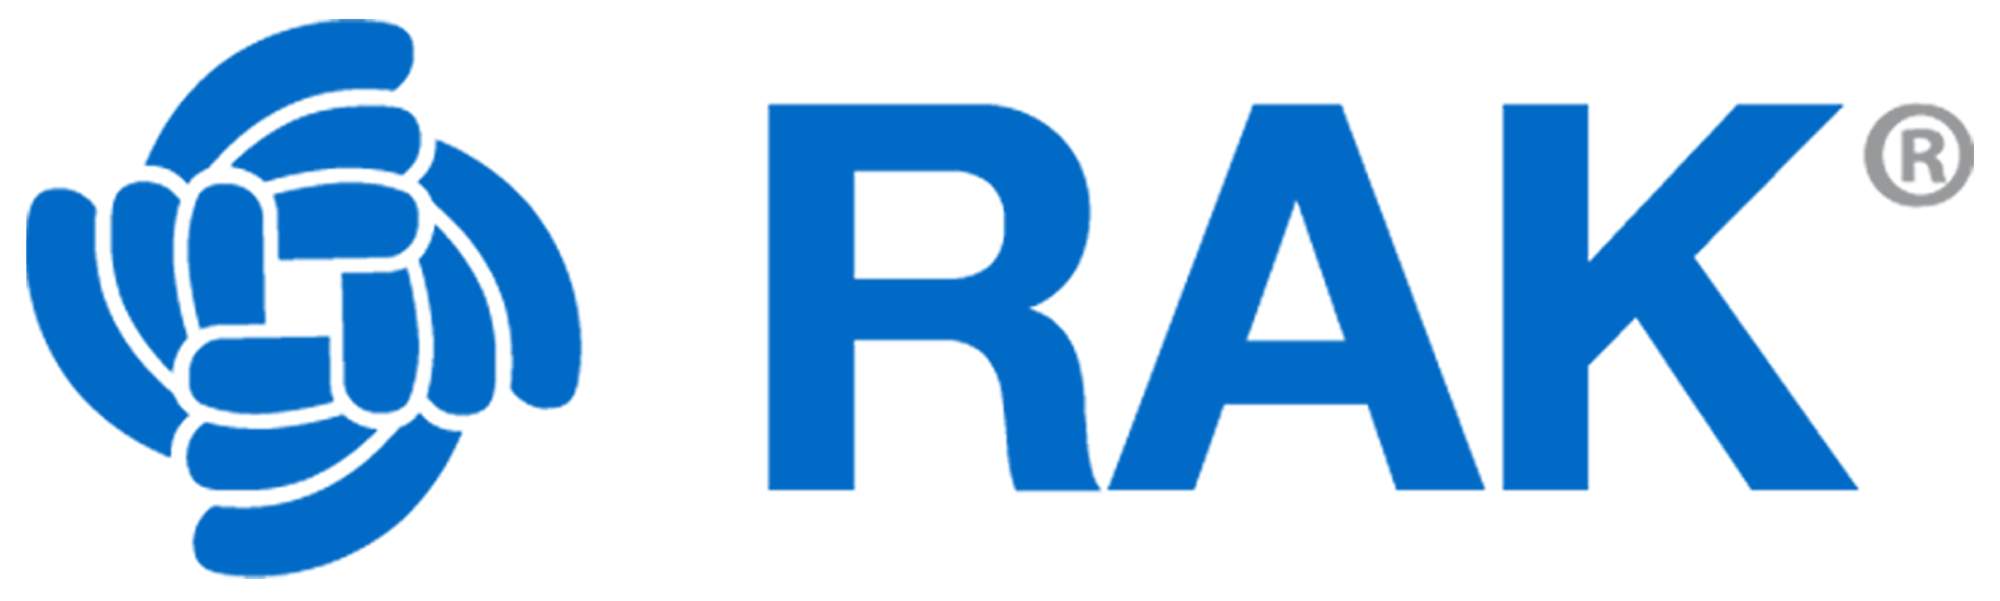 RAKwireless News Hub